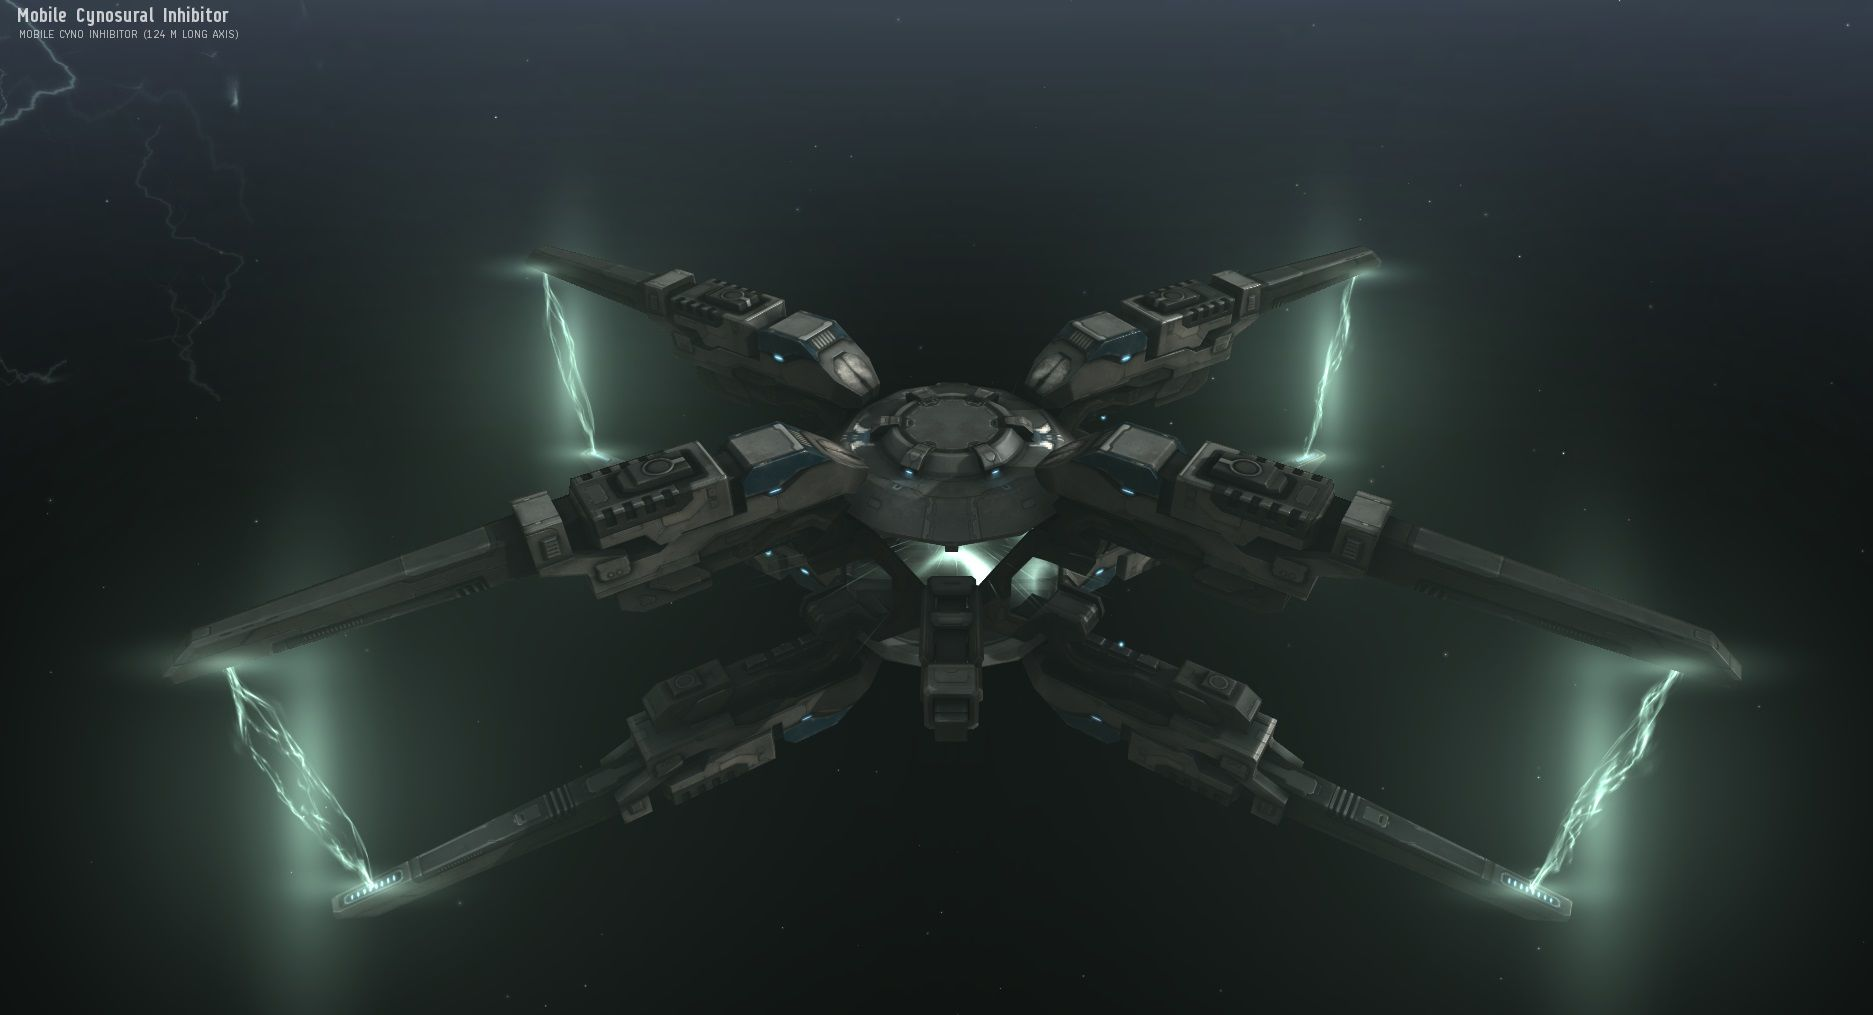 EVE Online: Rubicon Deployable Details - Space Yurts